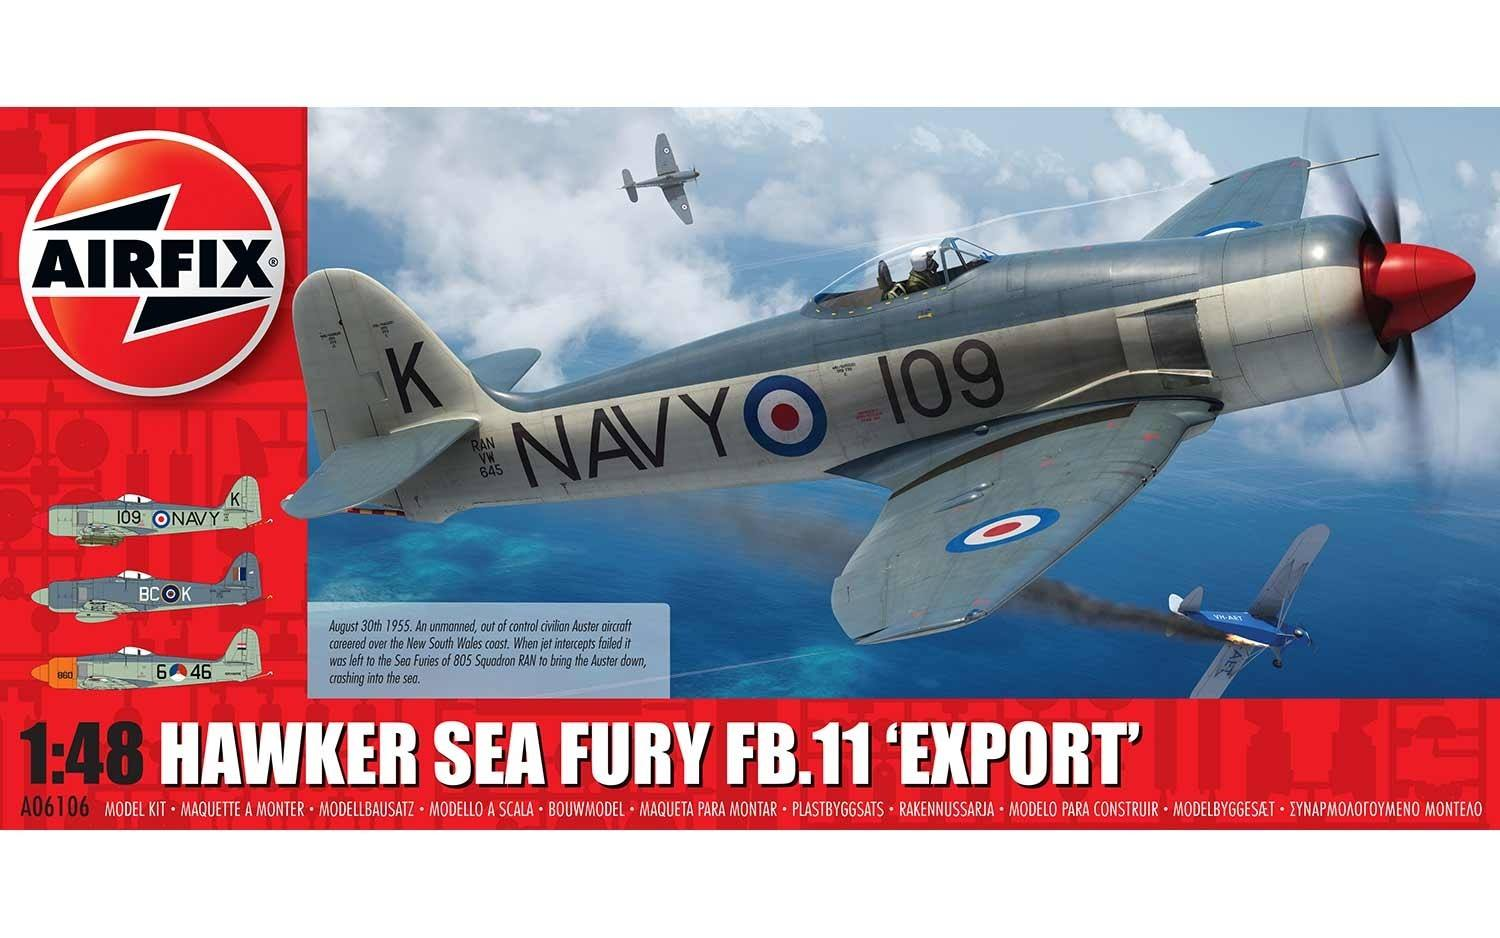 Hawker Sea Fury FB.11 R.A.N.